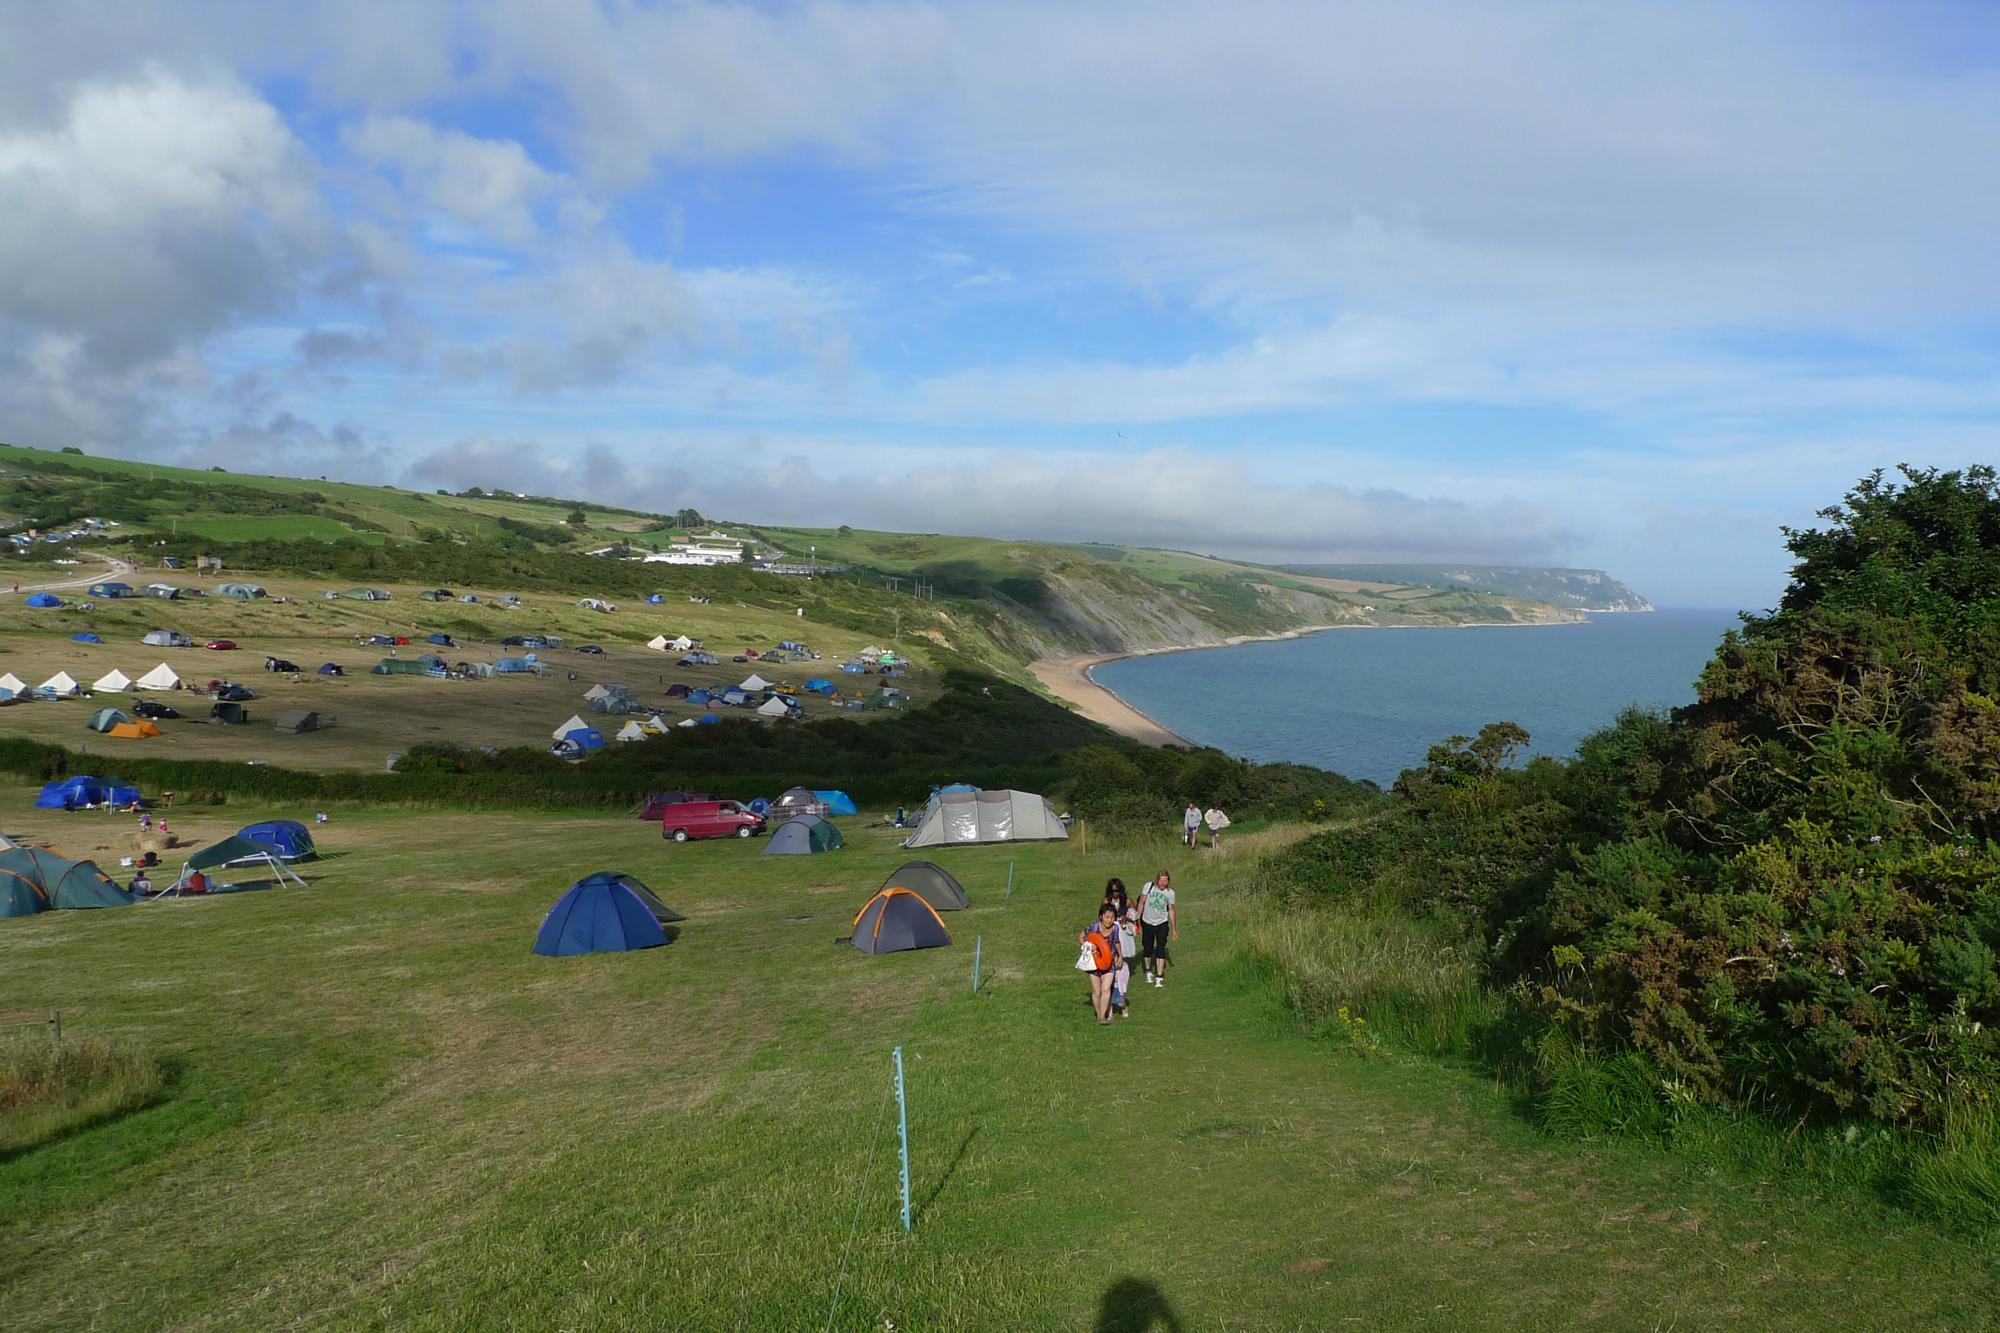 Campsites on the Jurassic Coast